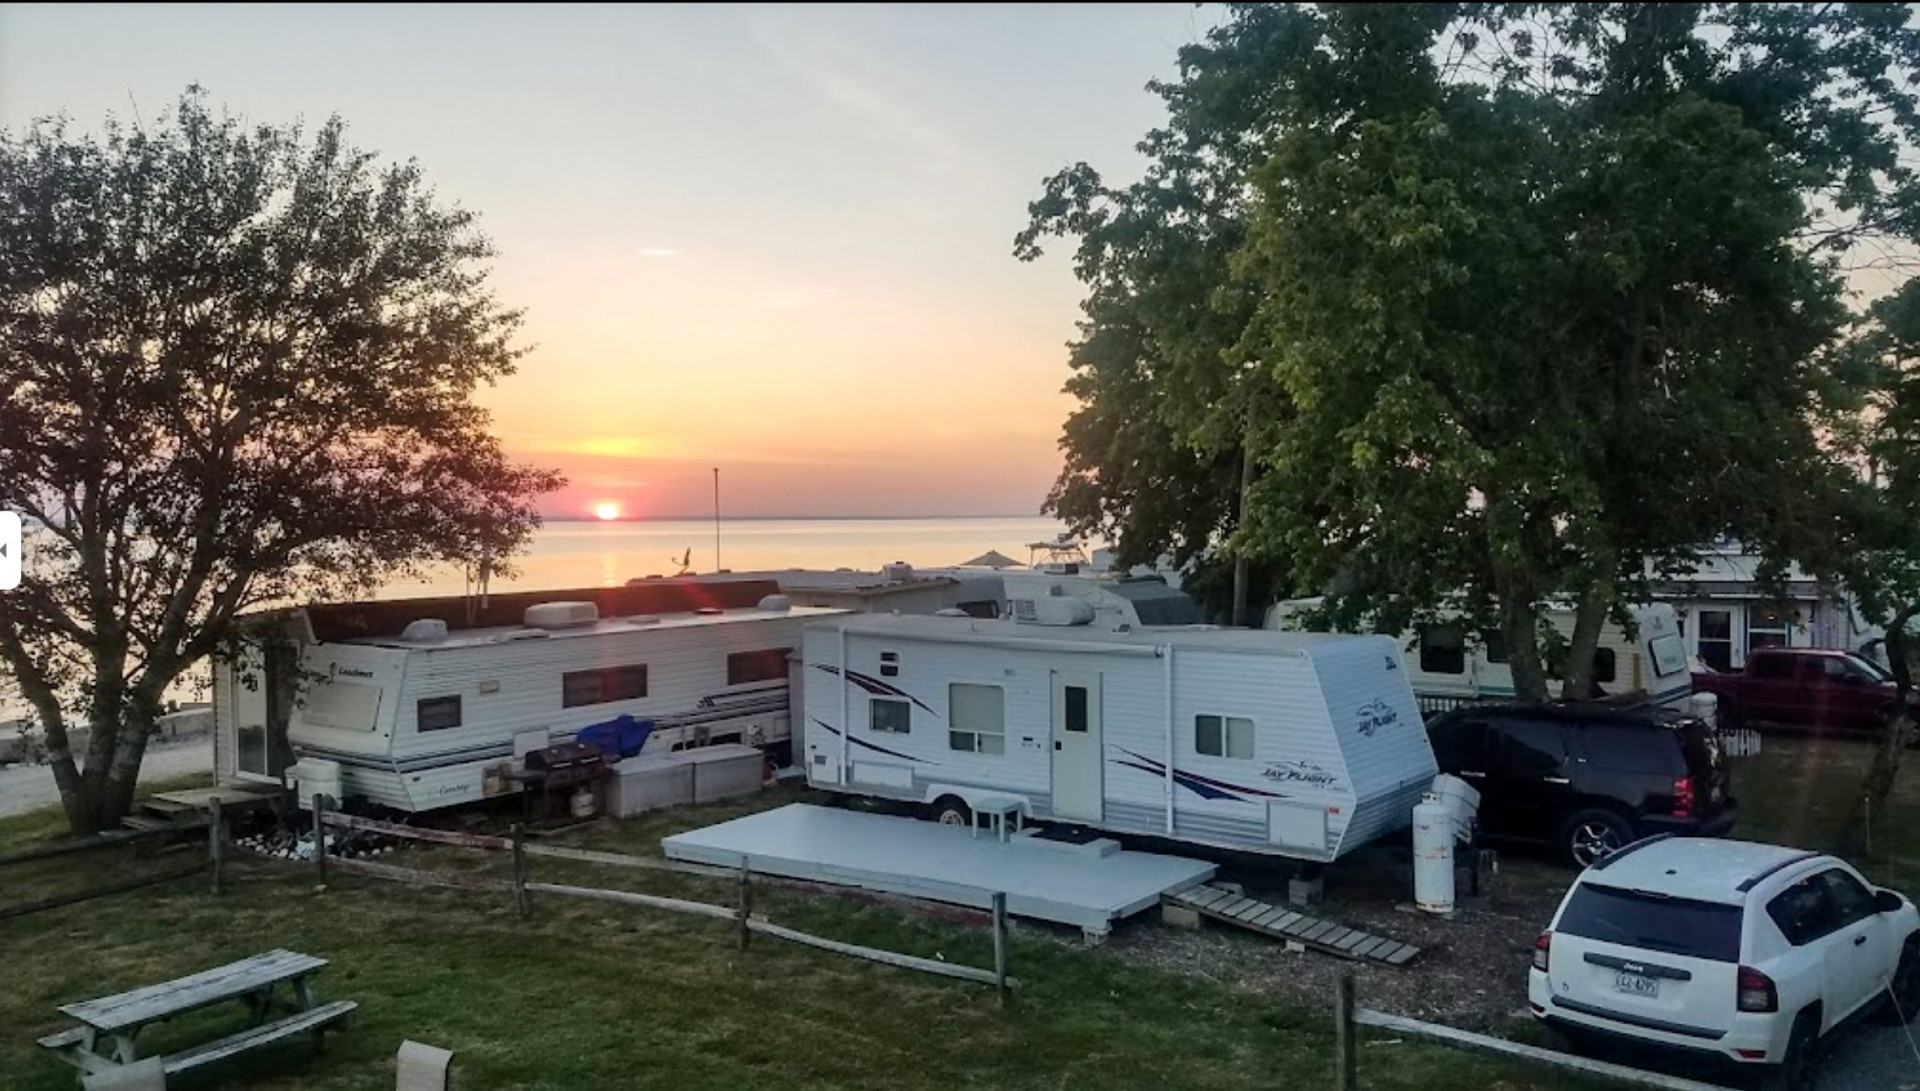 Taylors Island Family Campground in Dorchester County, MD - Photo by Sherry Mayne